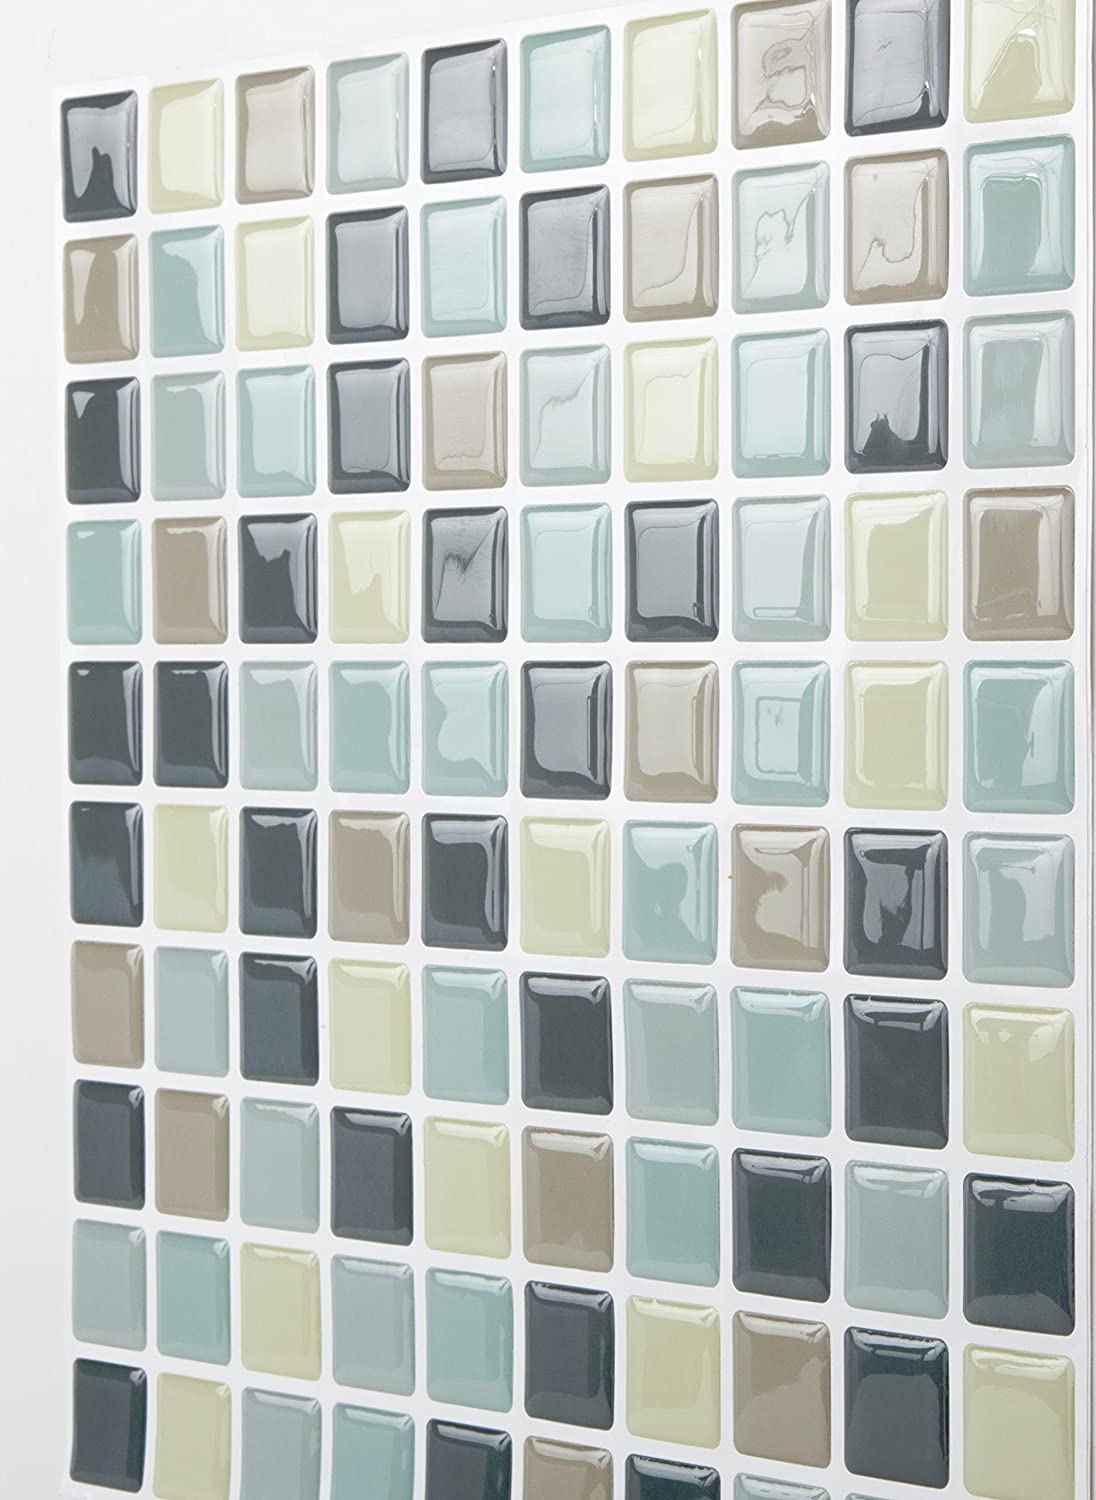 Tic Tac Tile Anti-mold Peel and Stick Wall Tiles in Mosaic Mintgray ...